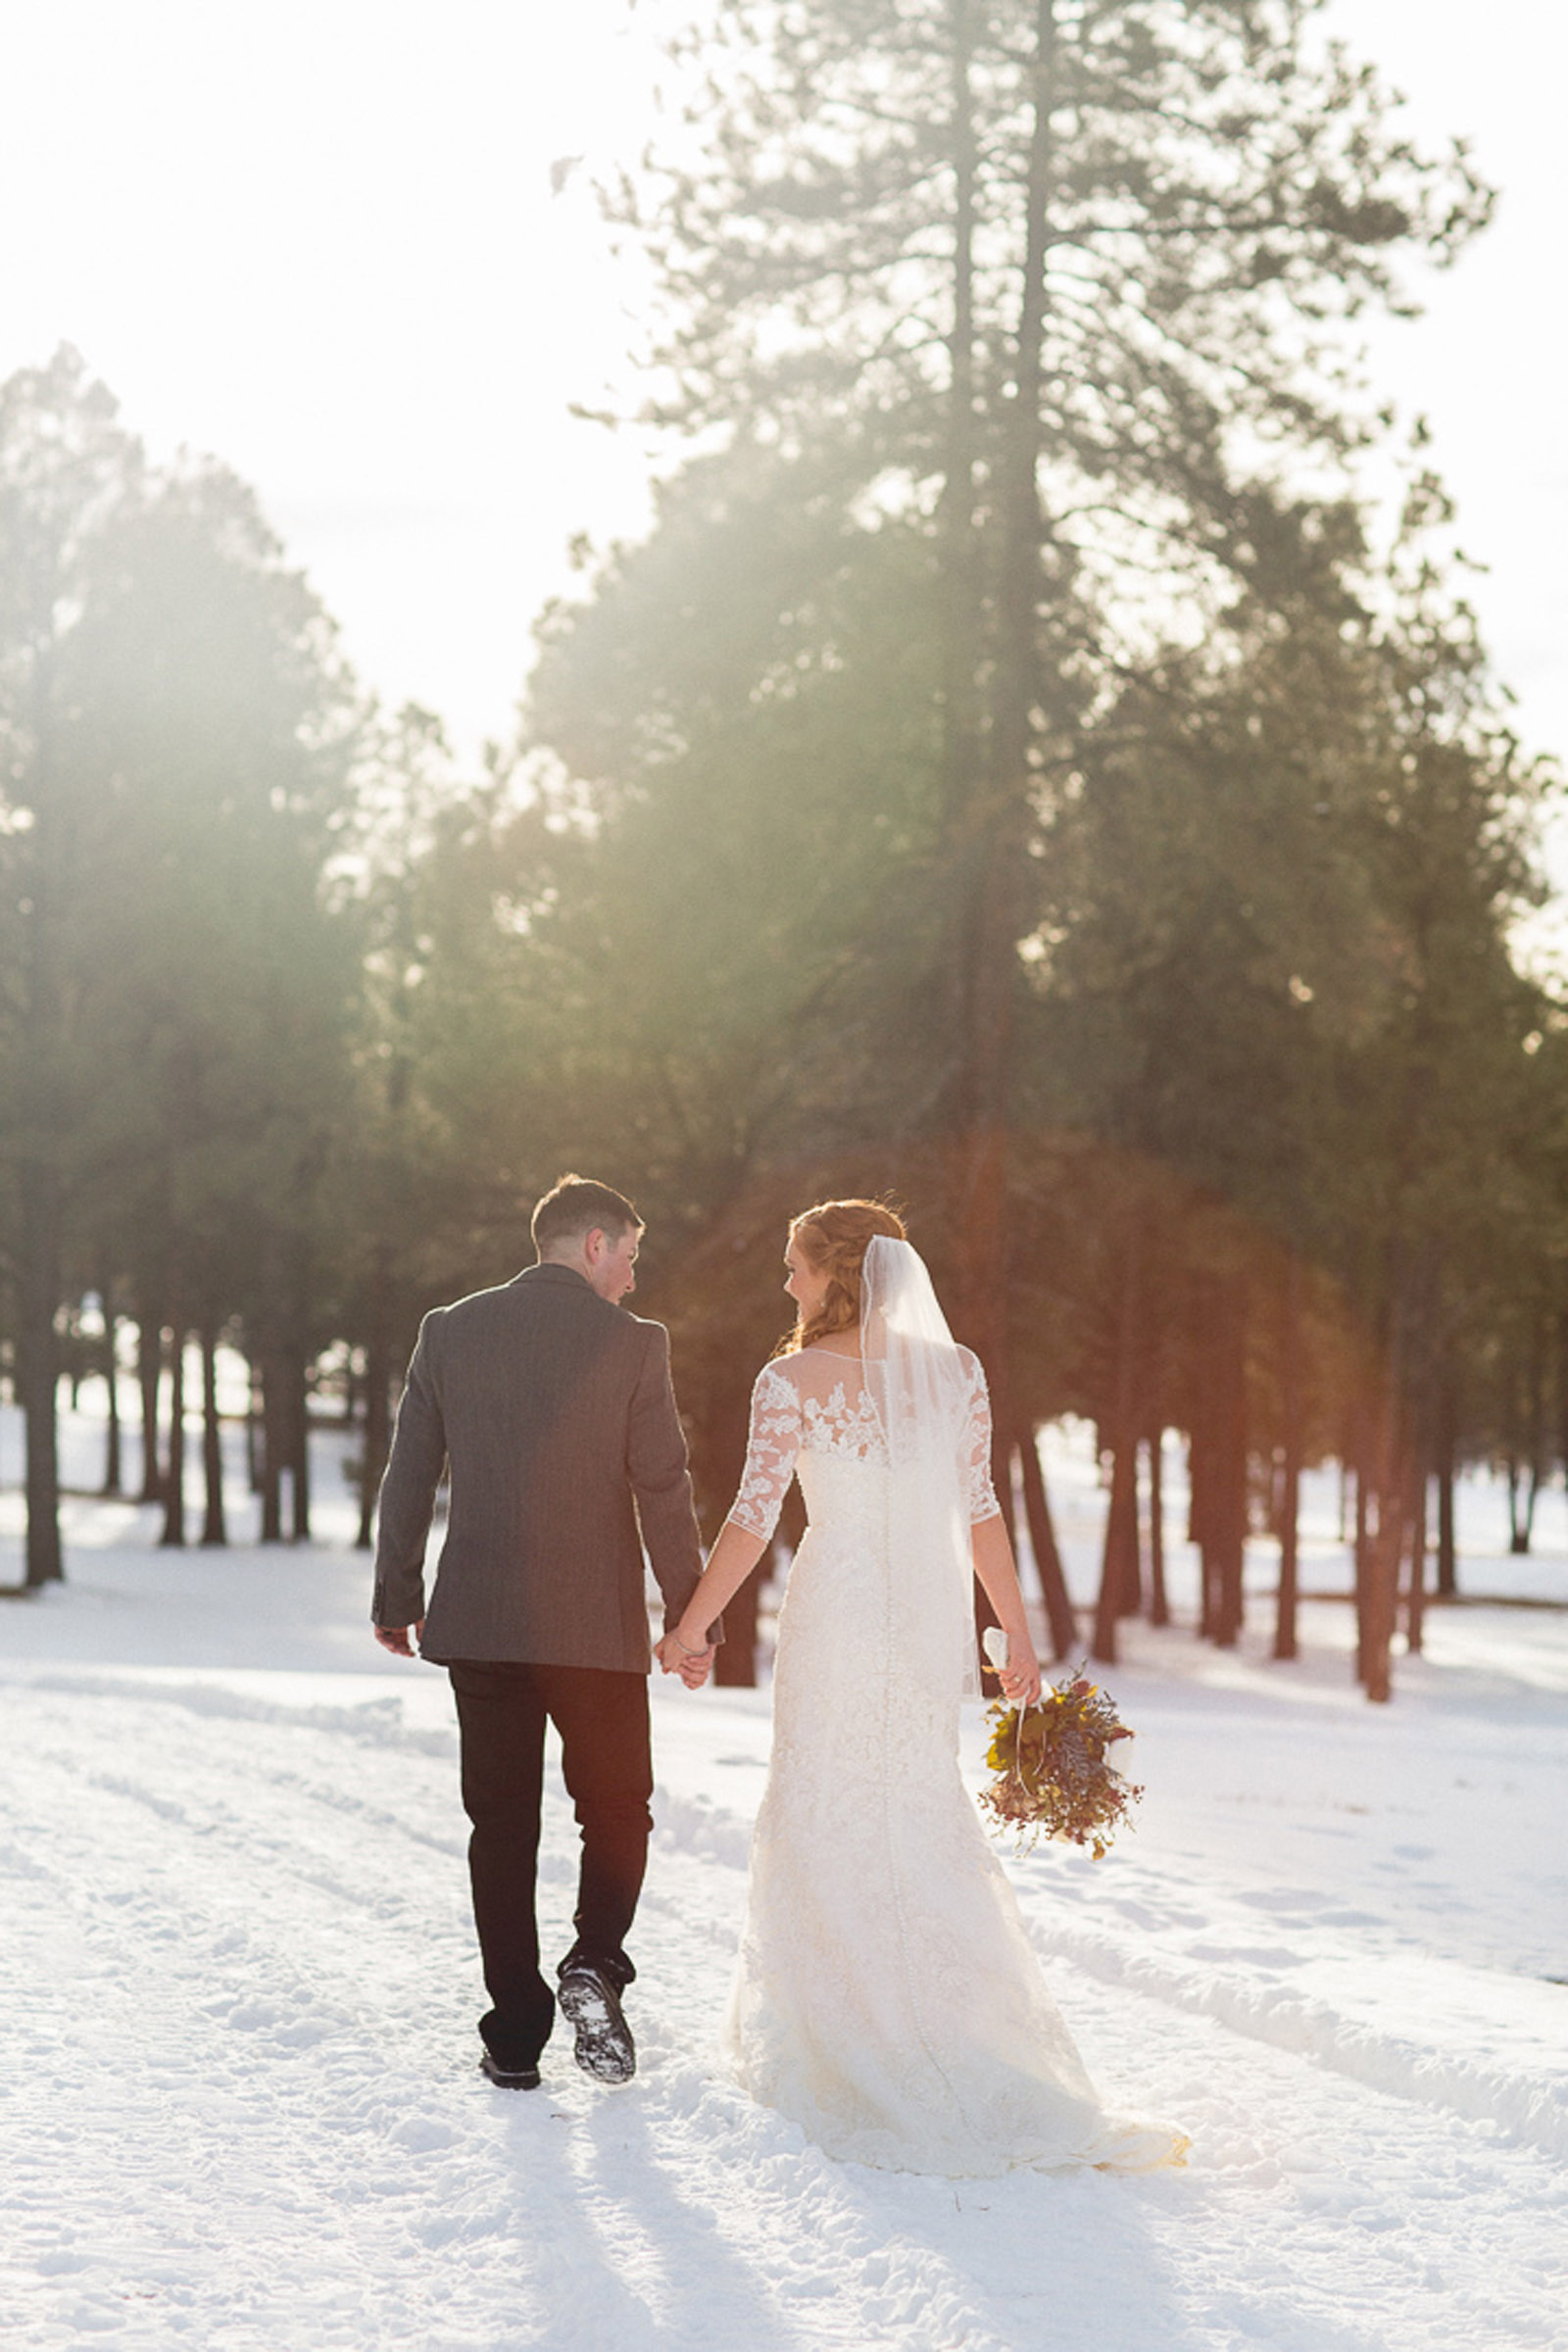 152-wedding-photographer-captures-newlyweds-in-snow-during-a-winter-snow-wedding-in-the-mountains-in-colorado